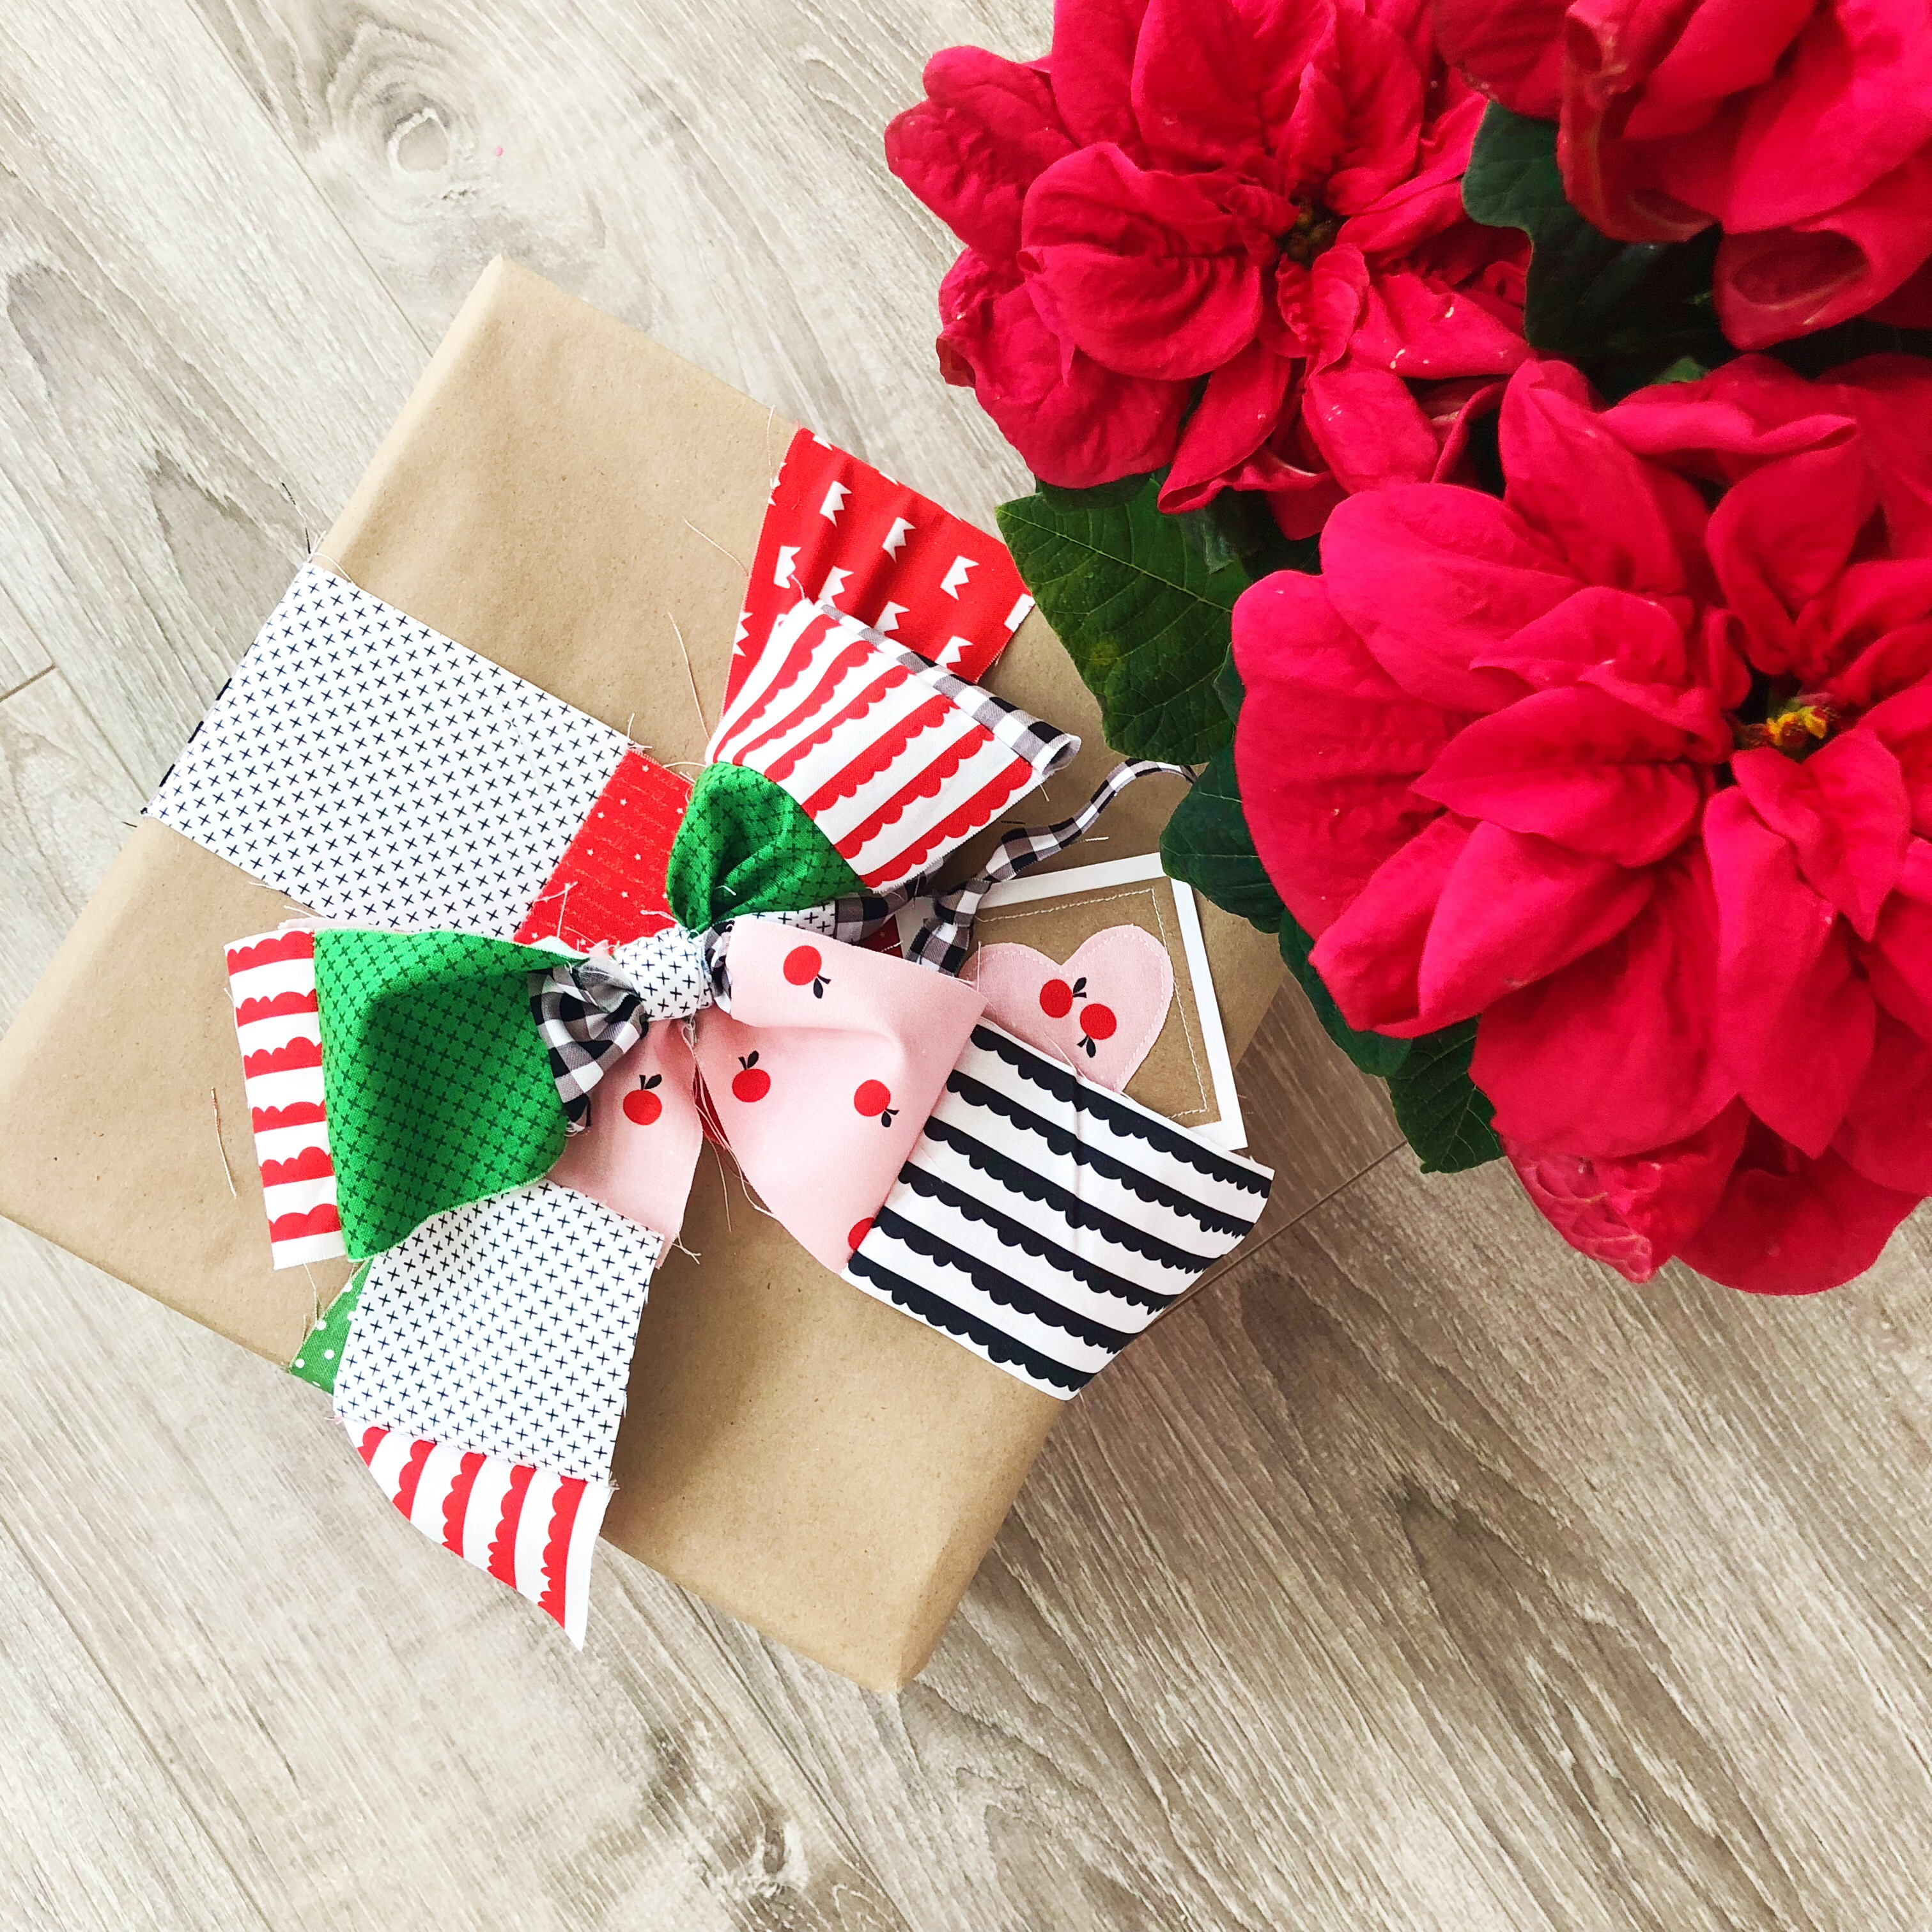 Christmas Fabric 2019.Christmas In July 2019 Week 1 Using Fabric Scraps To Make